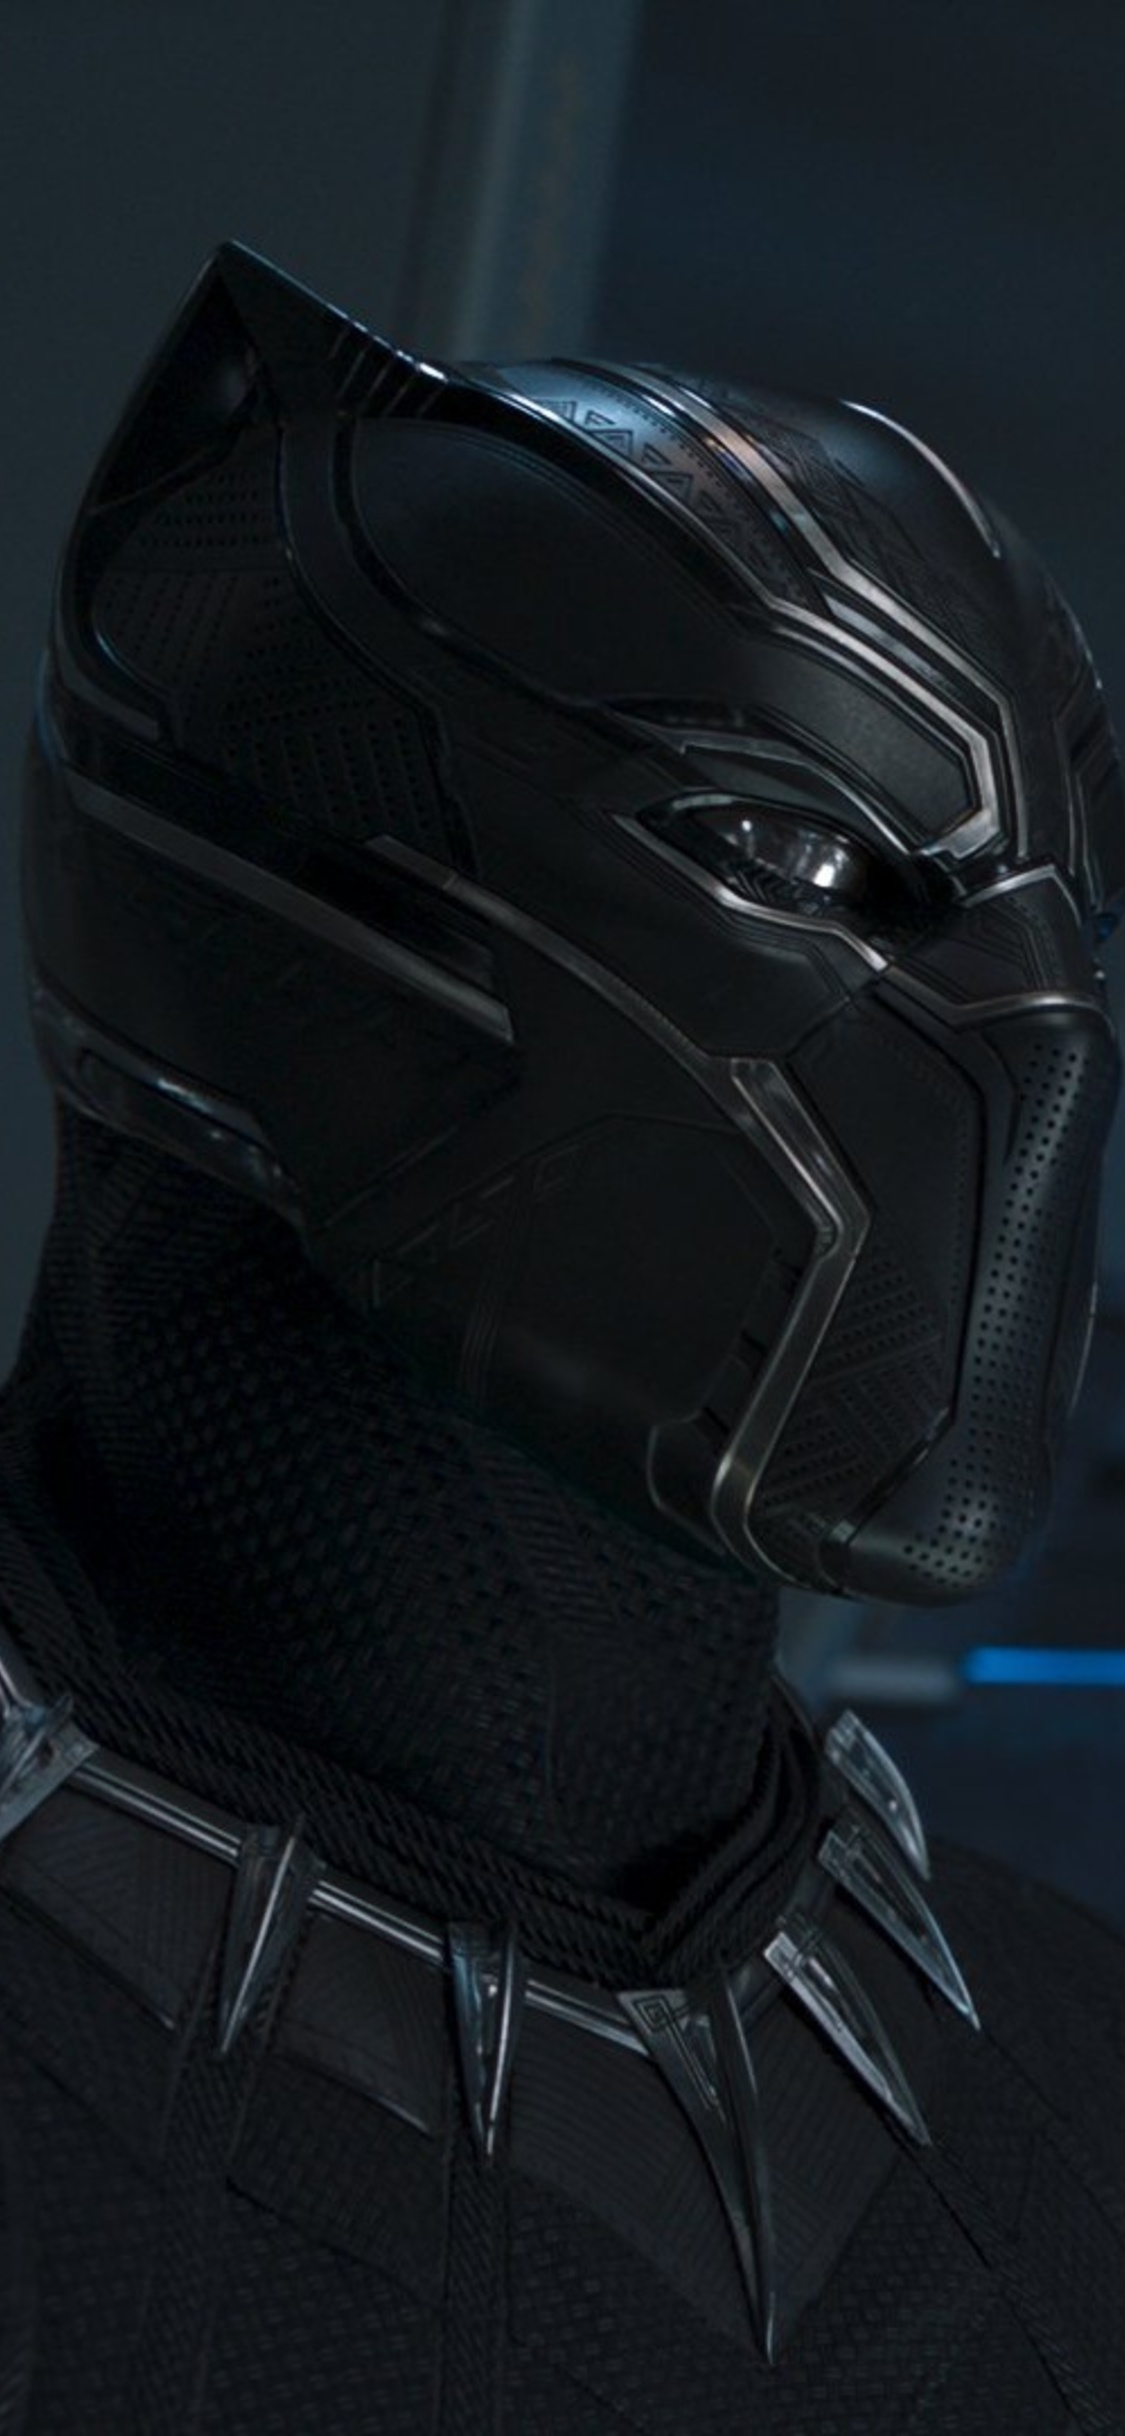 1125x2436 Black Panther Movie 2018 HD Iphone XS,Iphone 10 ...